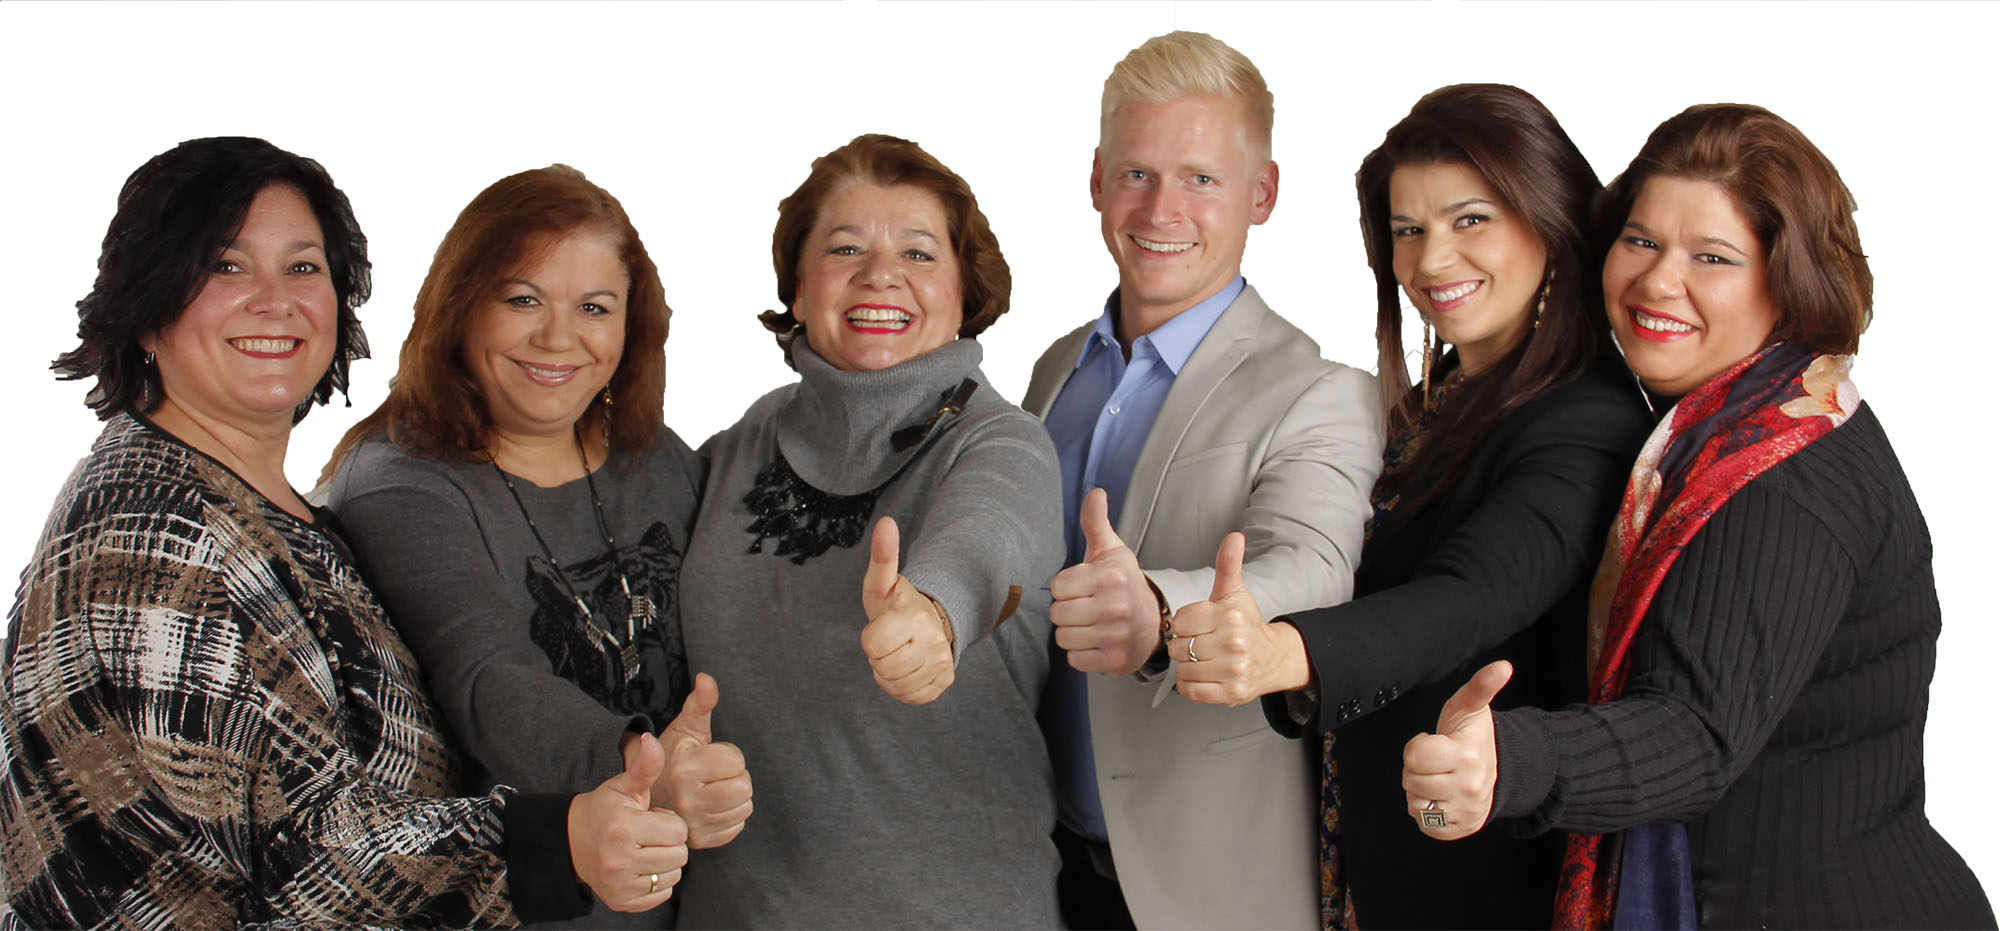 team contact thumbs up multiturismo